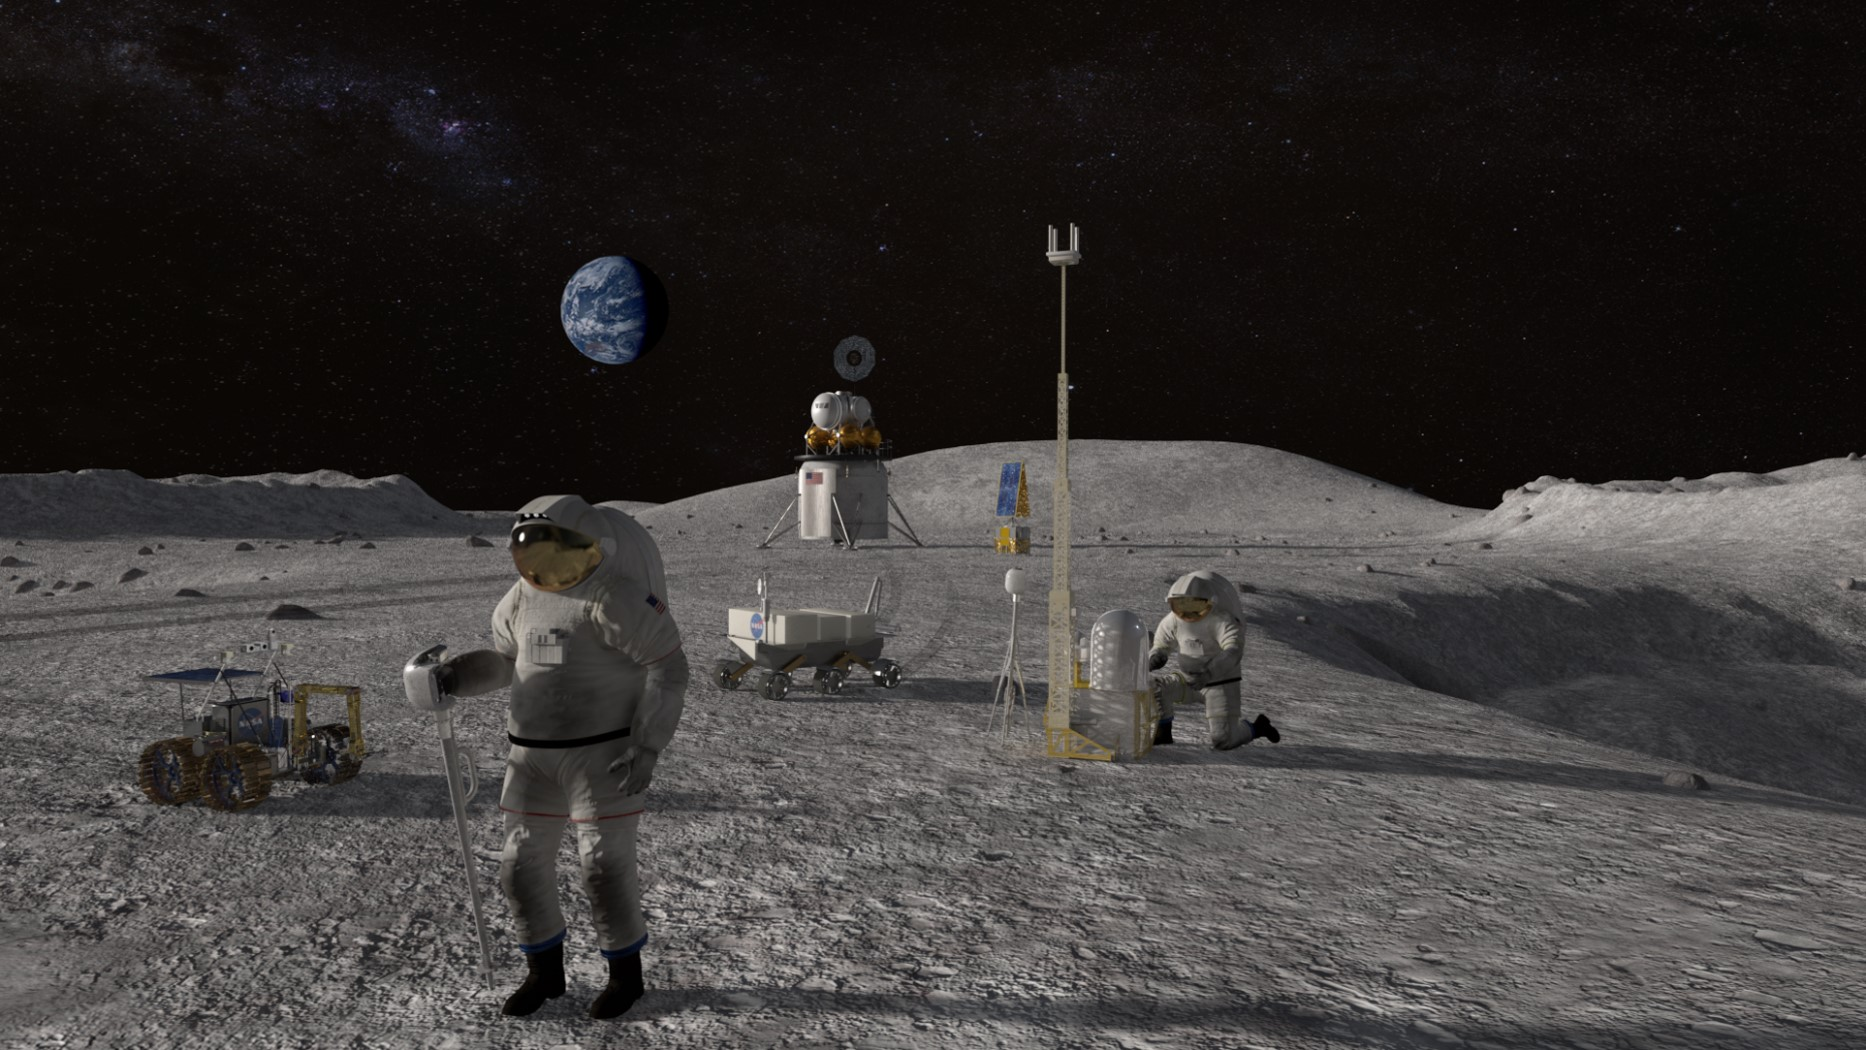 An illustration of astronauts building a moon base.